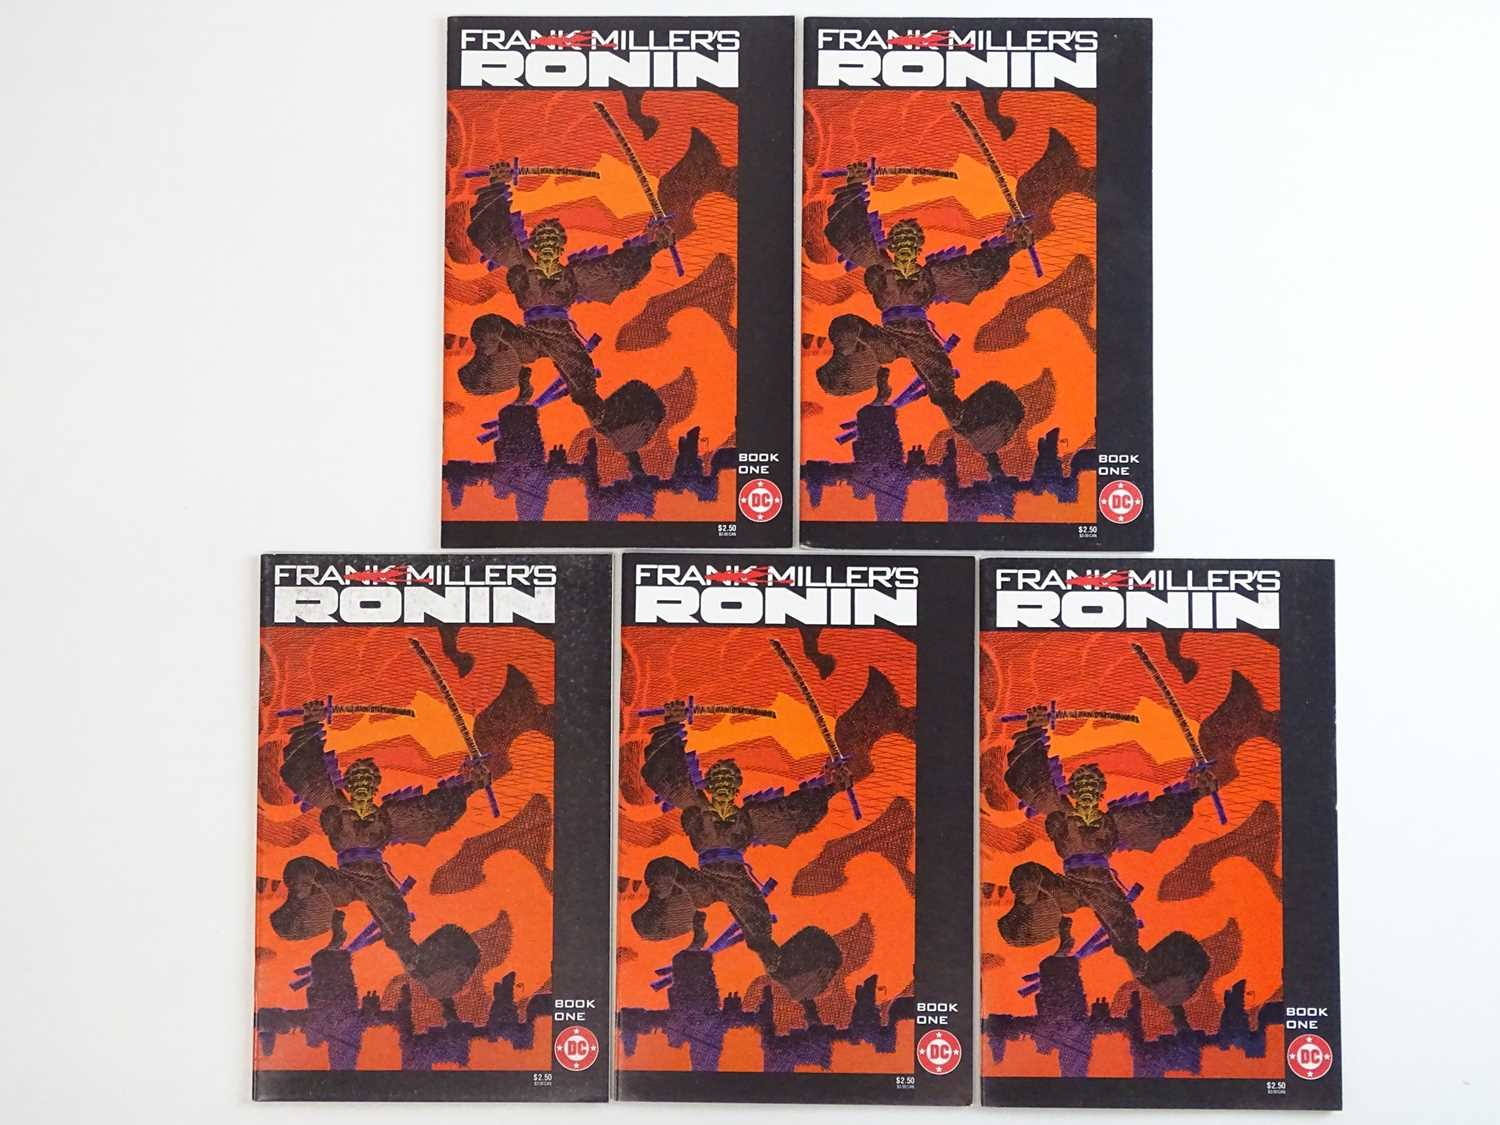 RONIN #1 - (5 in Lot) - (1983 - DC) - First Printing - Five (5) #1 issues for the Frank Miller